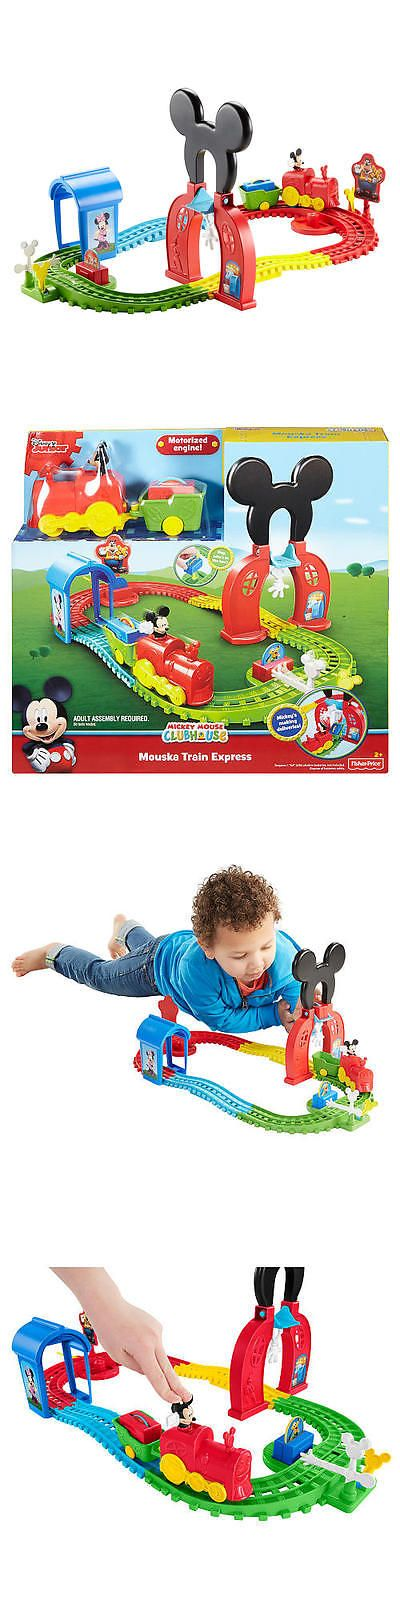 Mickey 19219: New Fisher-Price Disney Mickey Mouse Clubhouse Mouska Train Express Playset -> BUY IT NOW ONLY: $30.98 on eBay!